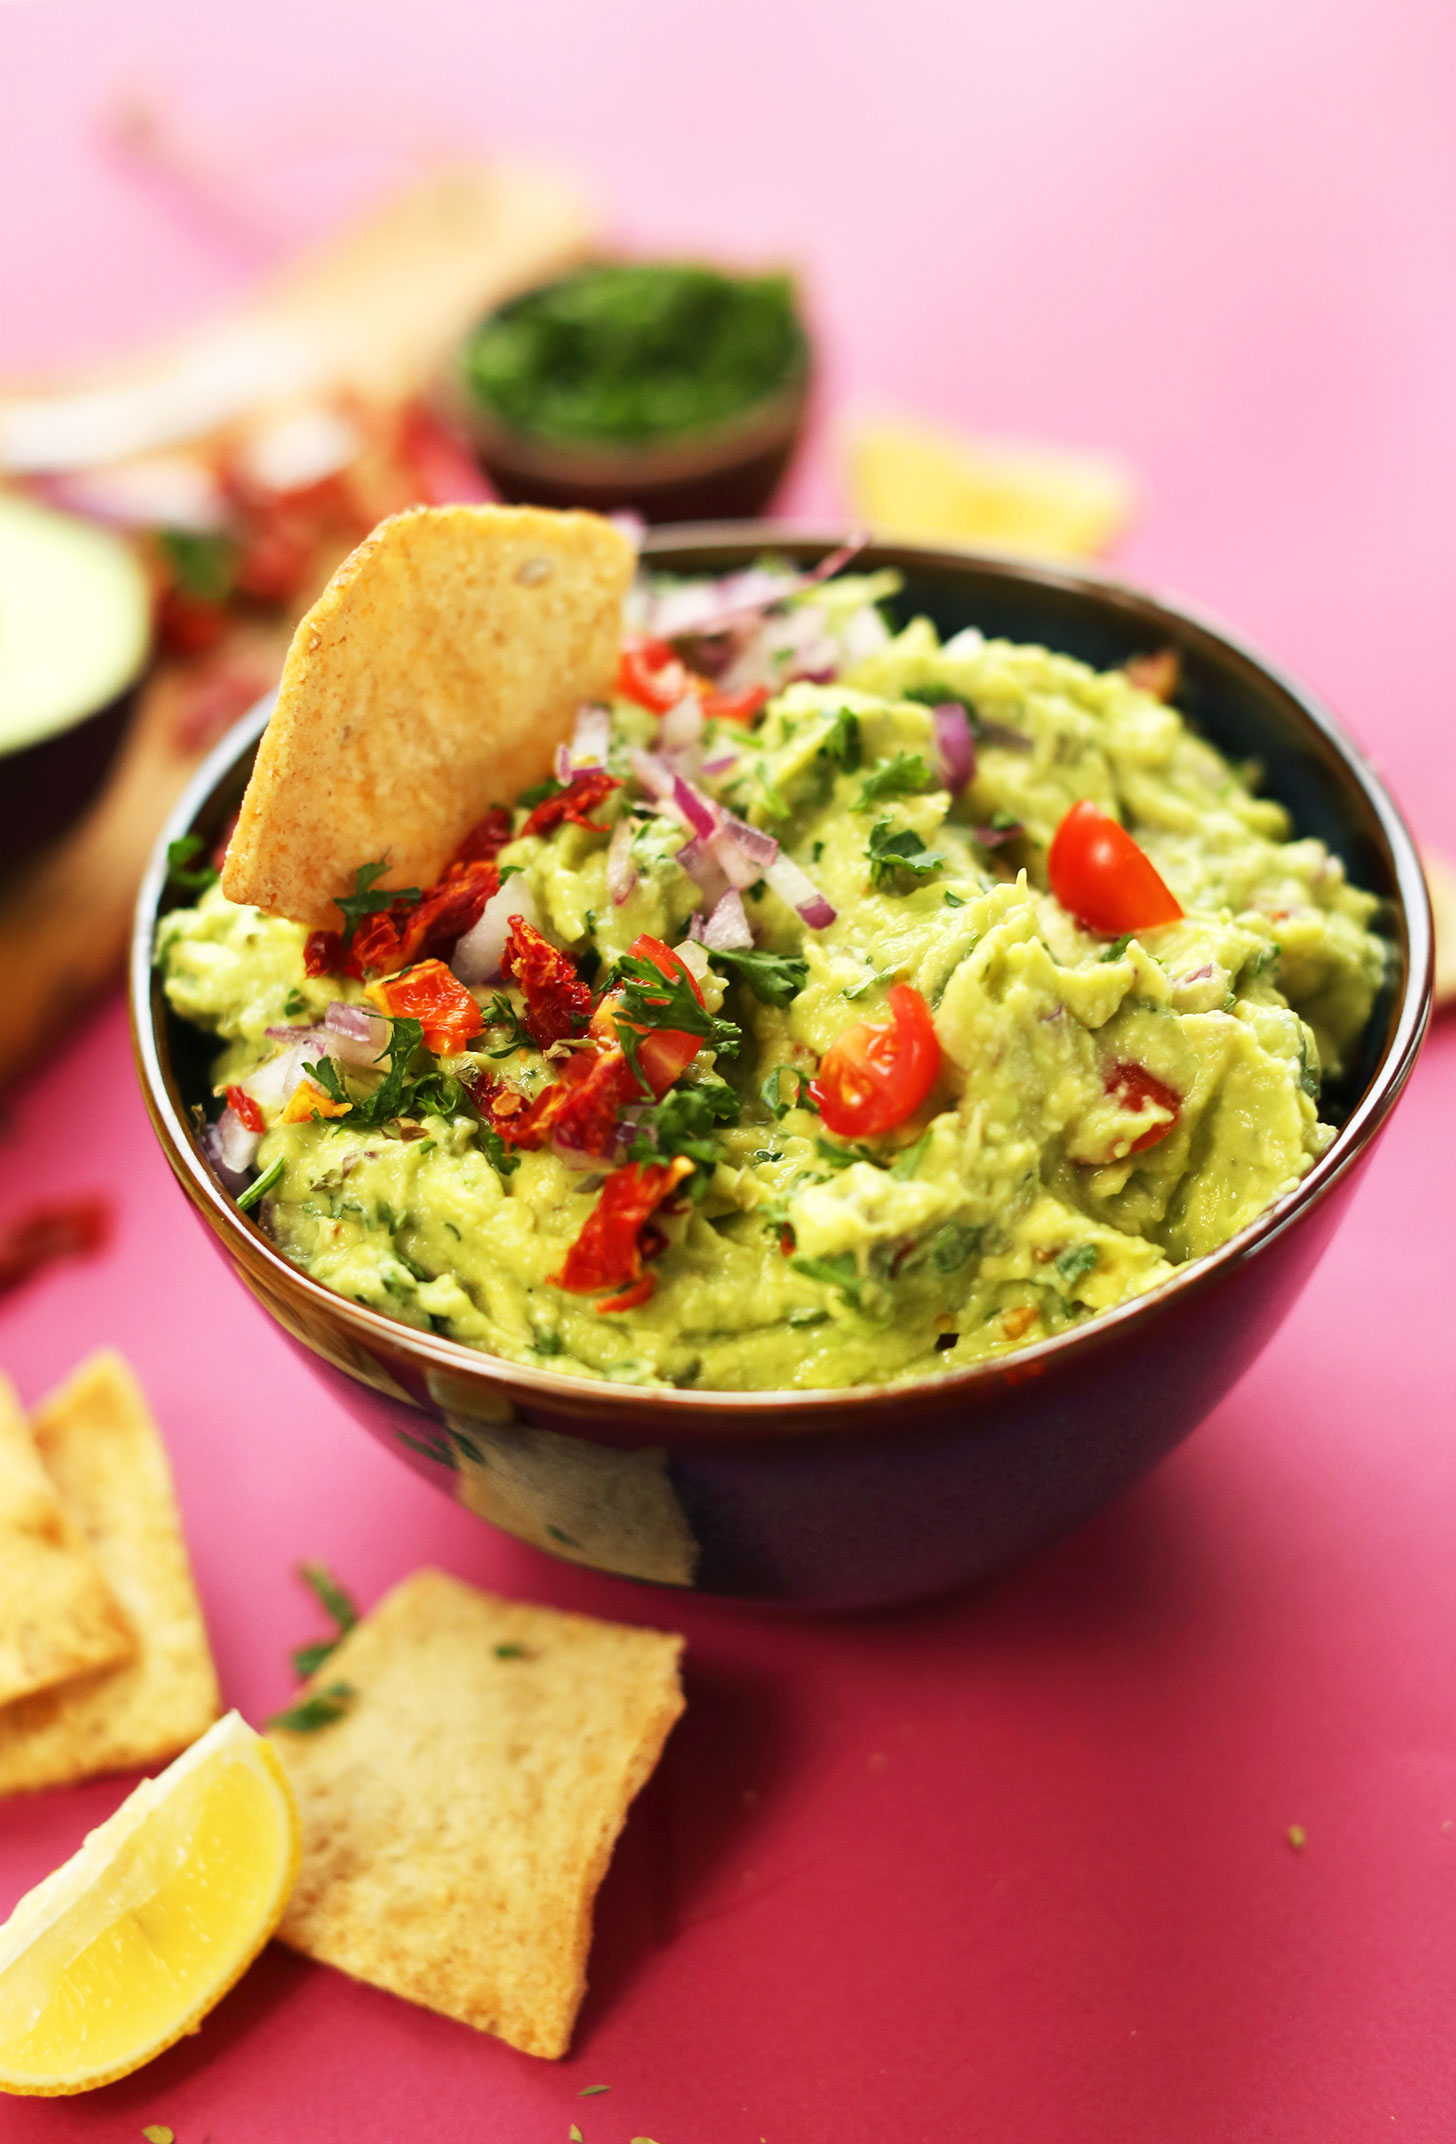 Bowl of our delicious Greek-inspired Guacamole made with sun-dried tomatoes, red onion, lemon juice, and oregano